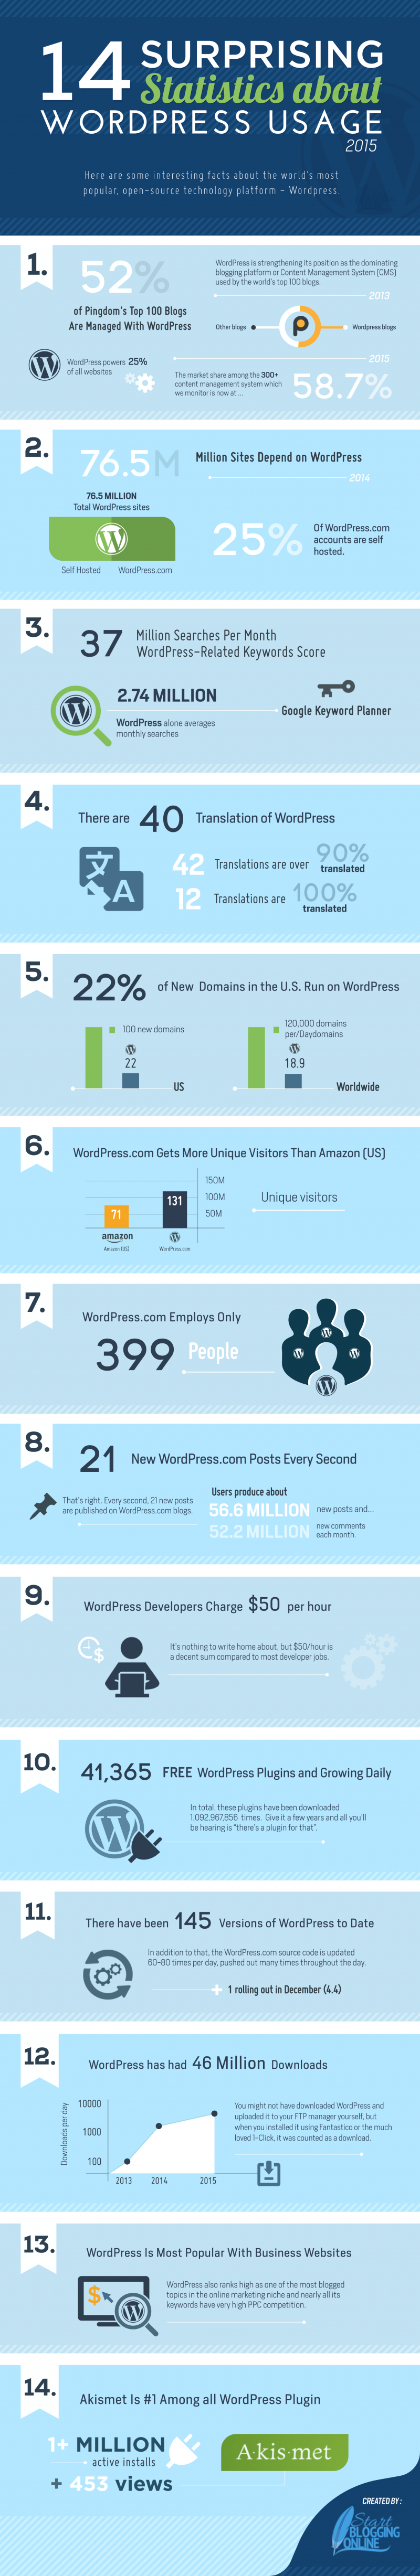 14 Surprising Statistics about WordPress Usage by Mike Wallagher